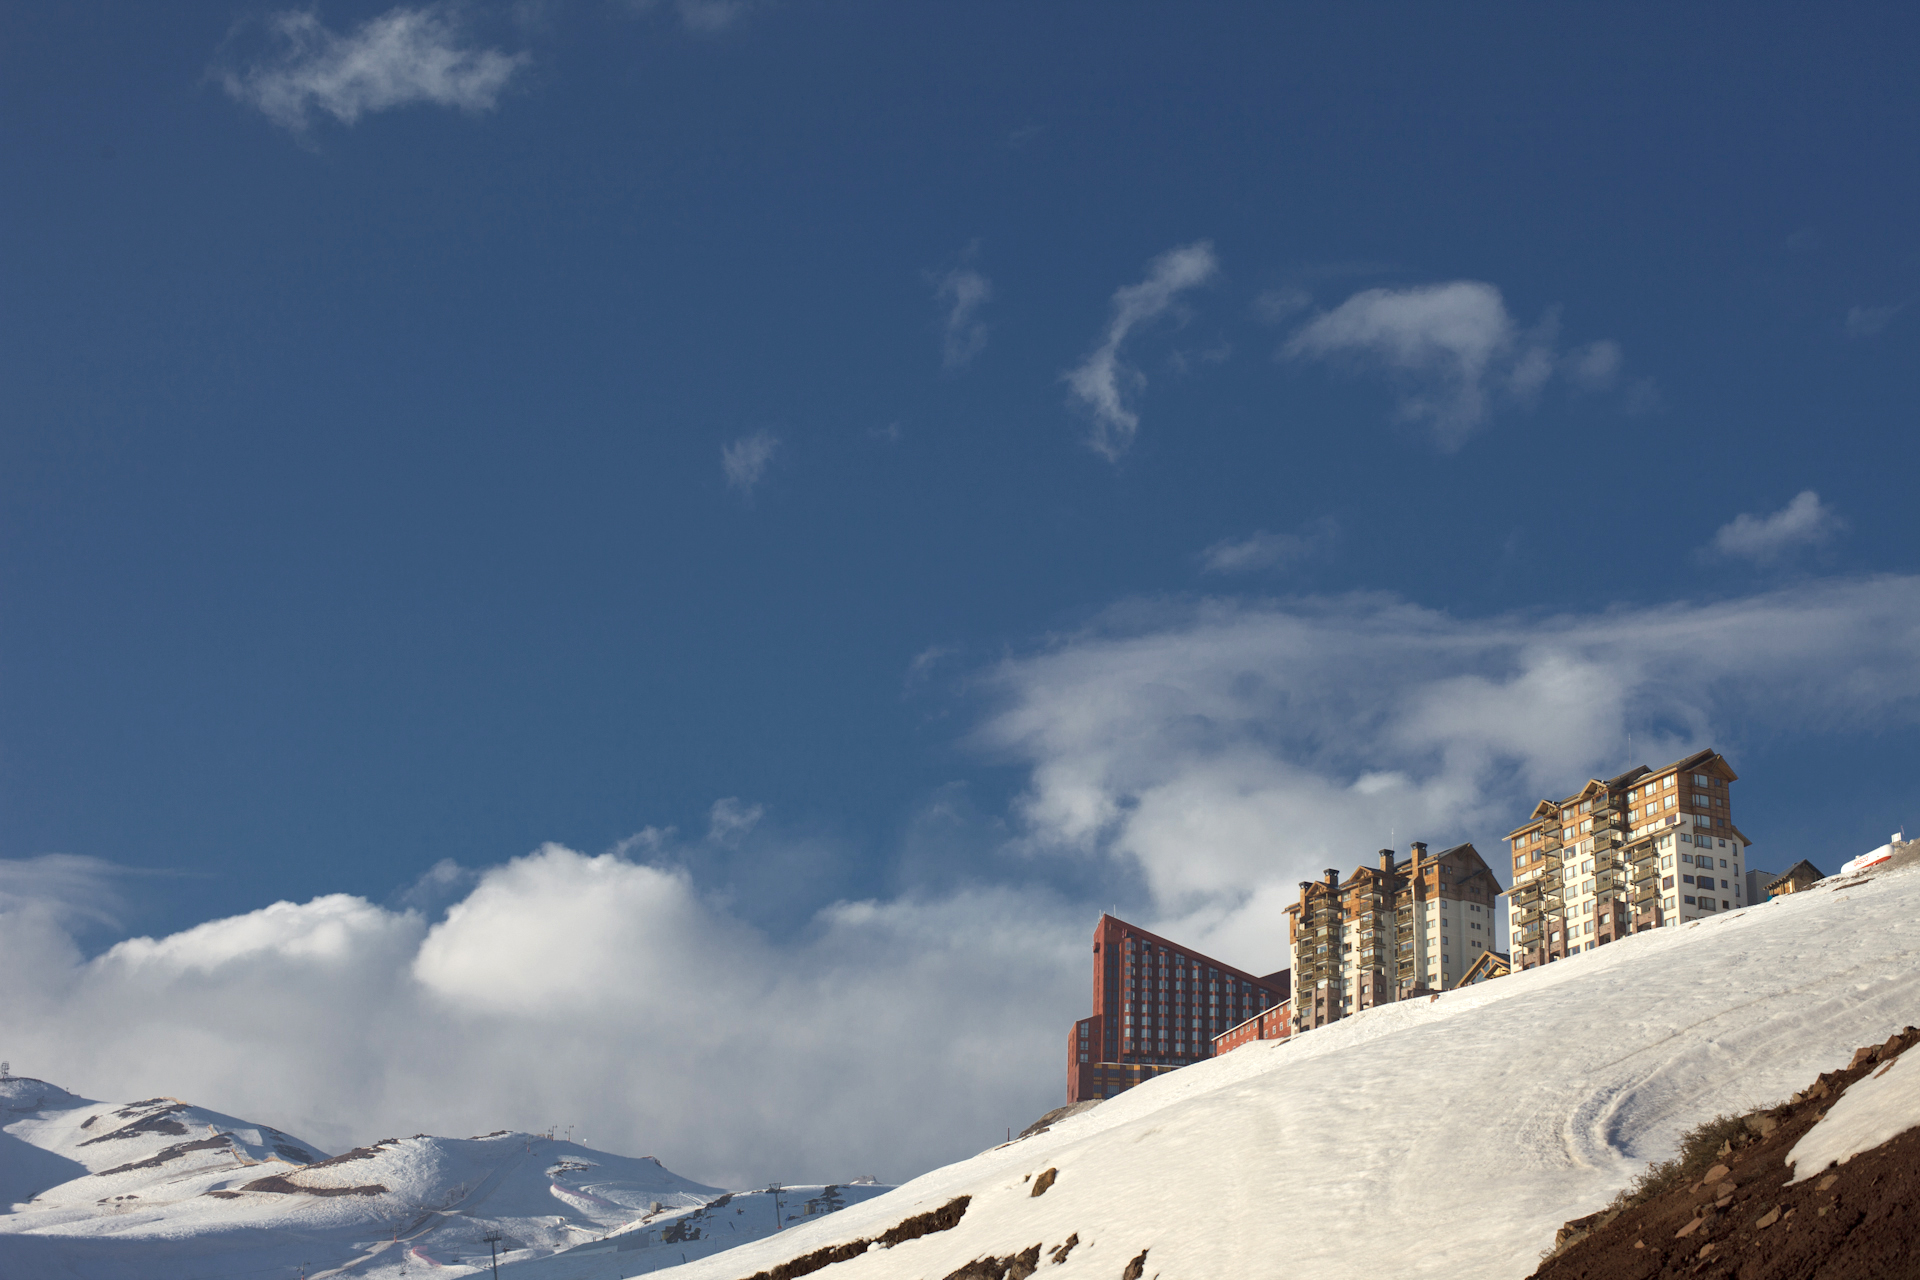 View of Valle Nevado. Photo by Jimmy Baikovicius.